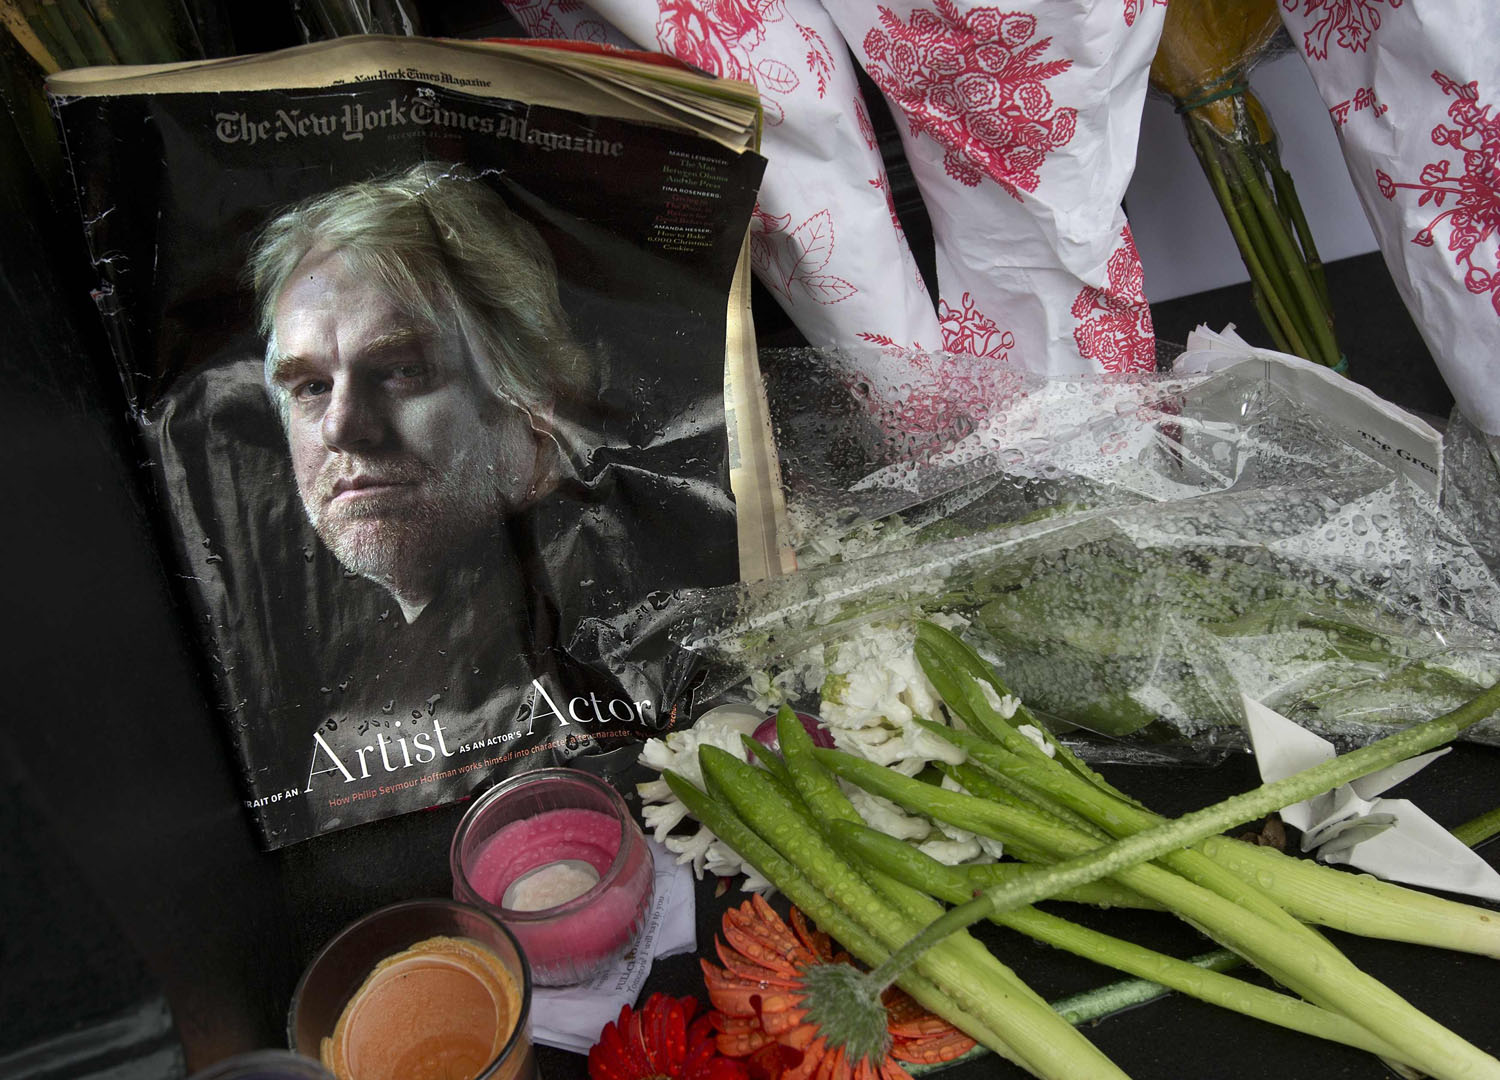 A copy of a New York Times Magazine with a photo of movie actor Philip Seymour Hoffman on the cover in a memorial in front of his apartment building in New York City, on Feb. 3, 2014.